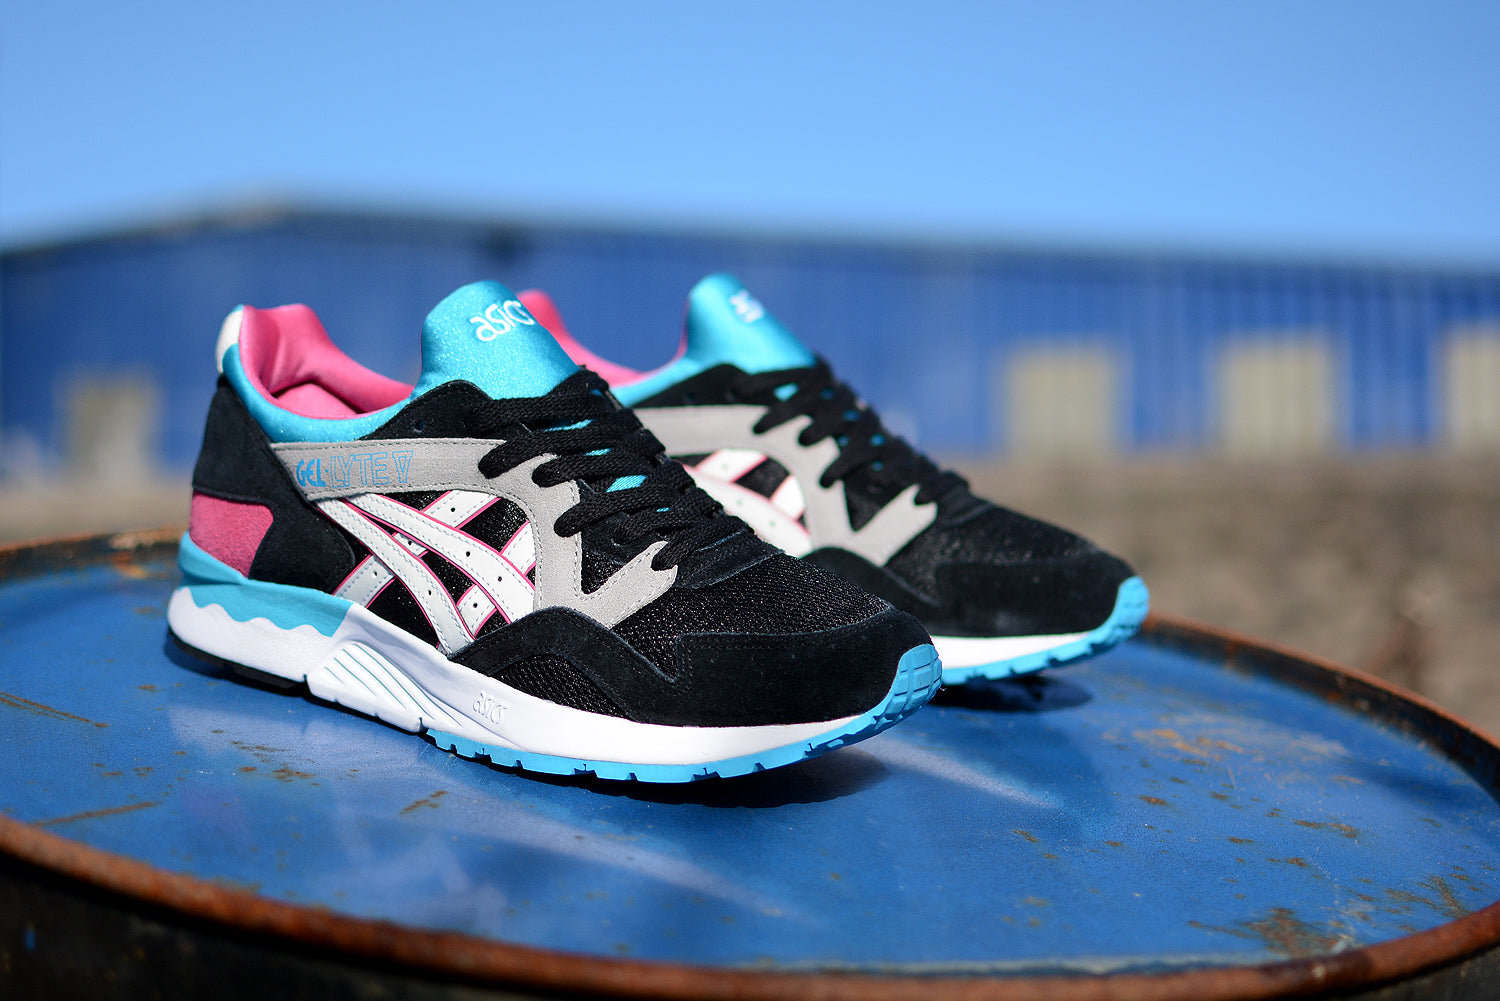 innovative design c2d0a a6863 ... reduced this asics gel lyte v predominantly black suede and mesh upper  with electric blue accents